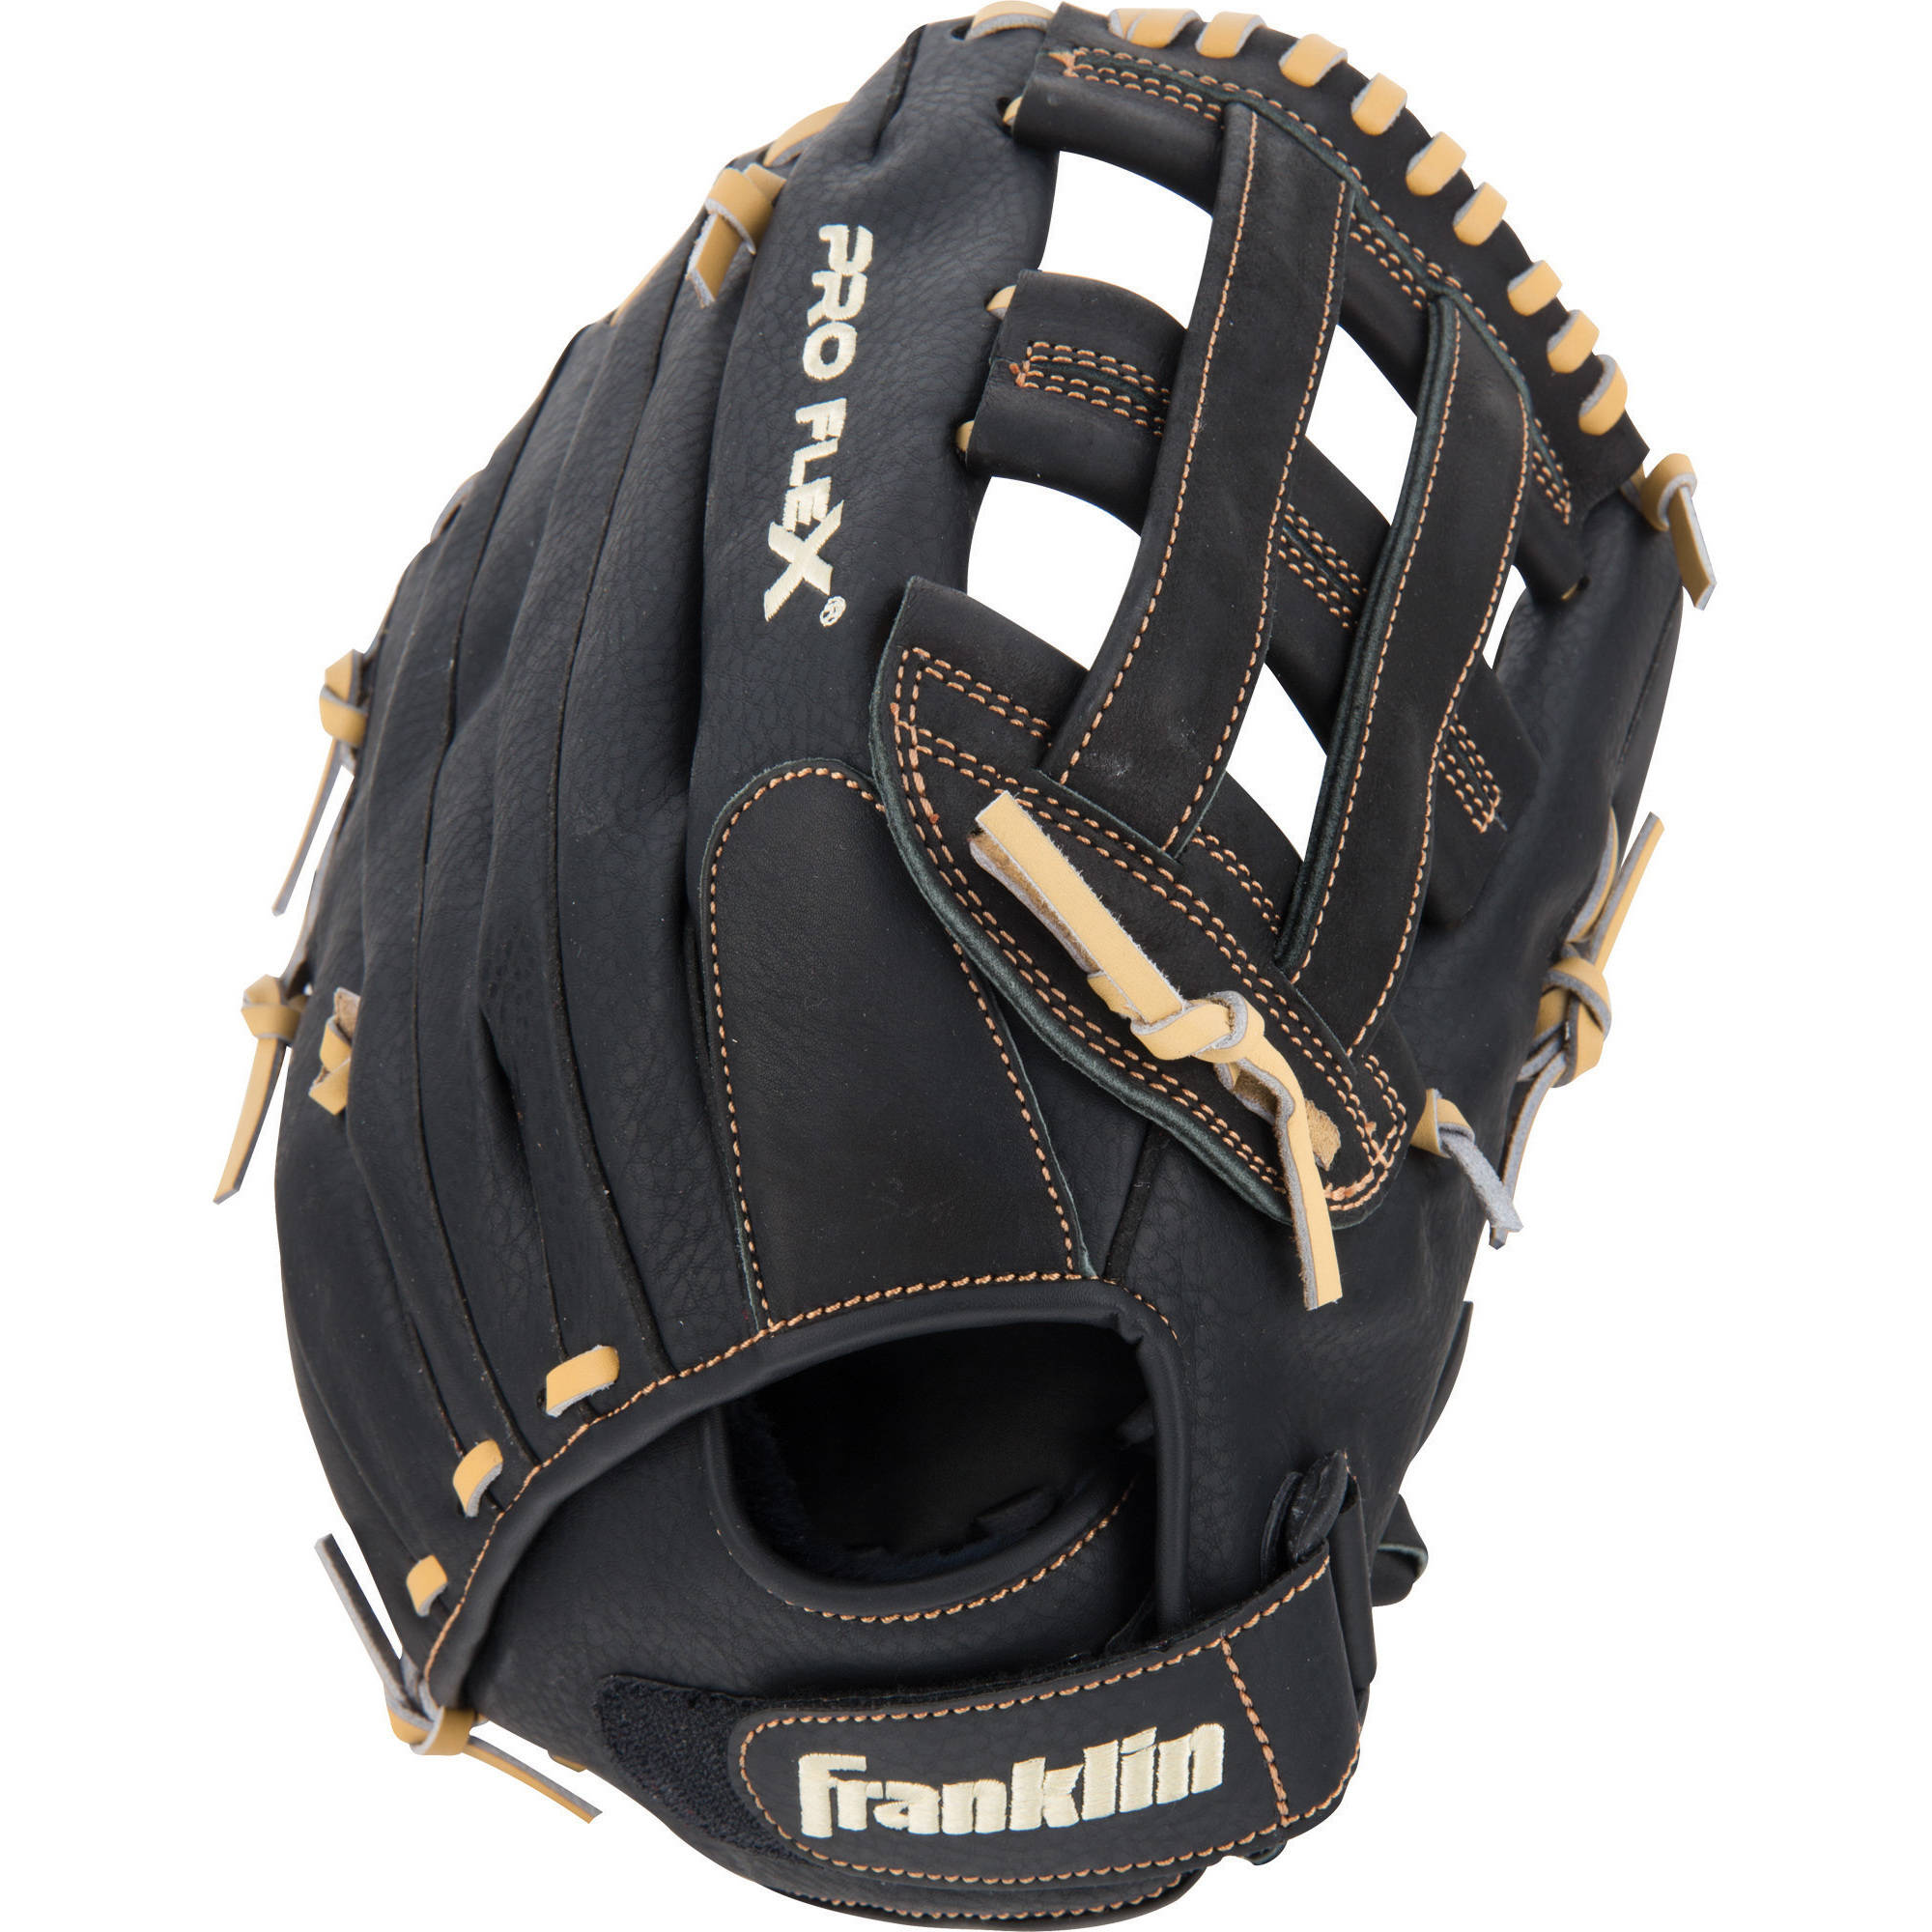 Franklin Sports Pro Flex Hybrid Series Baseball Glove